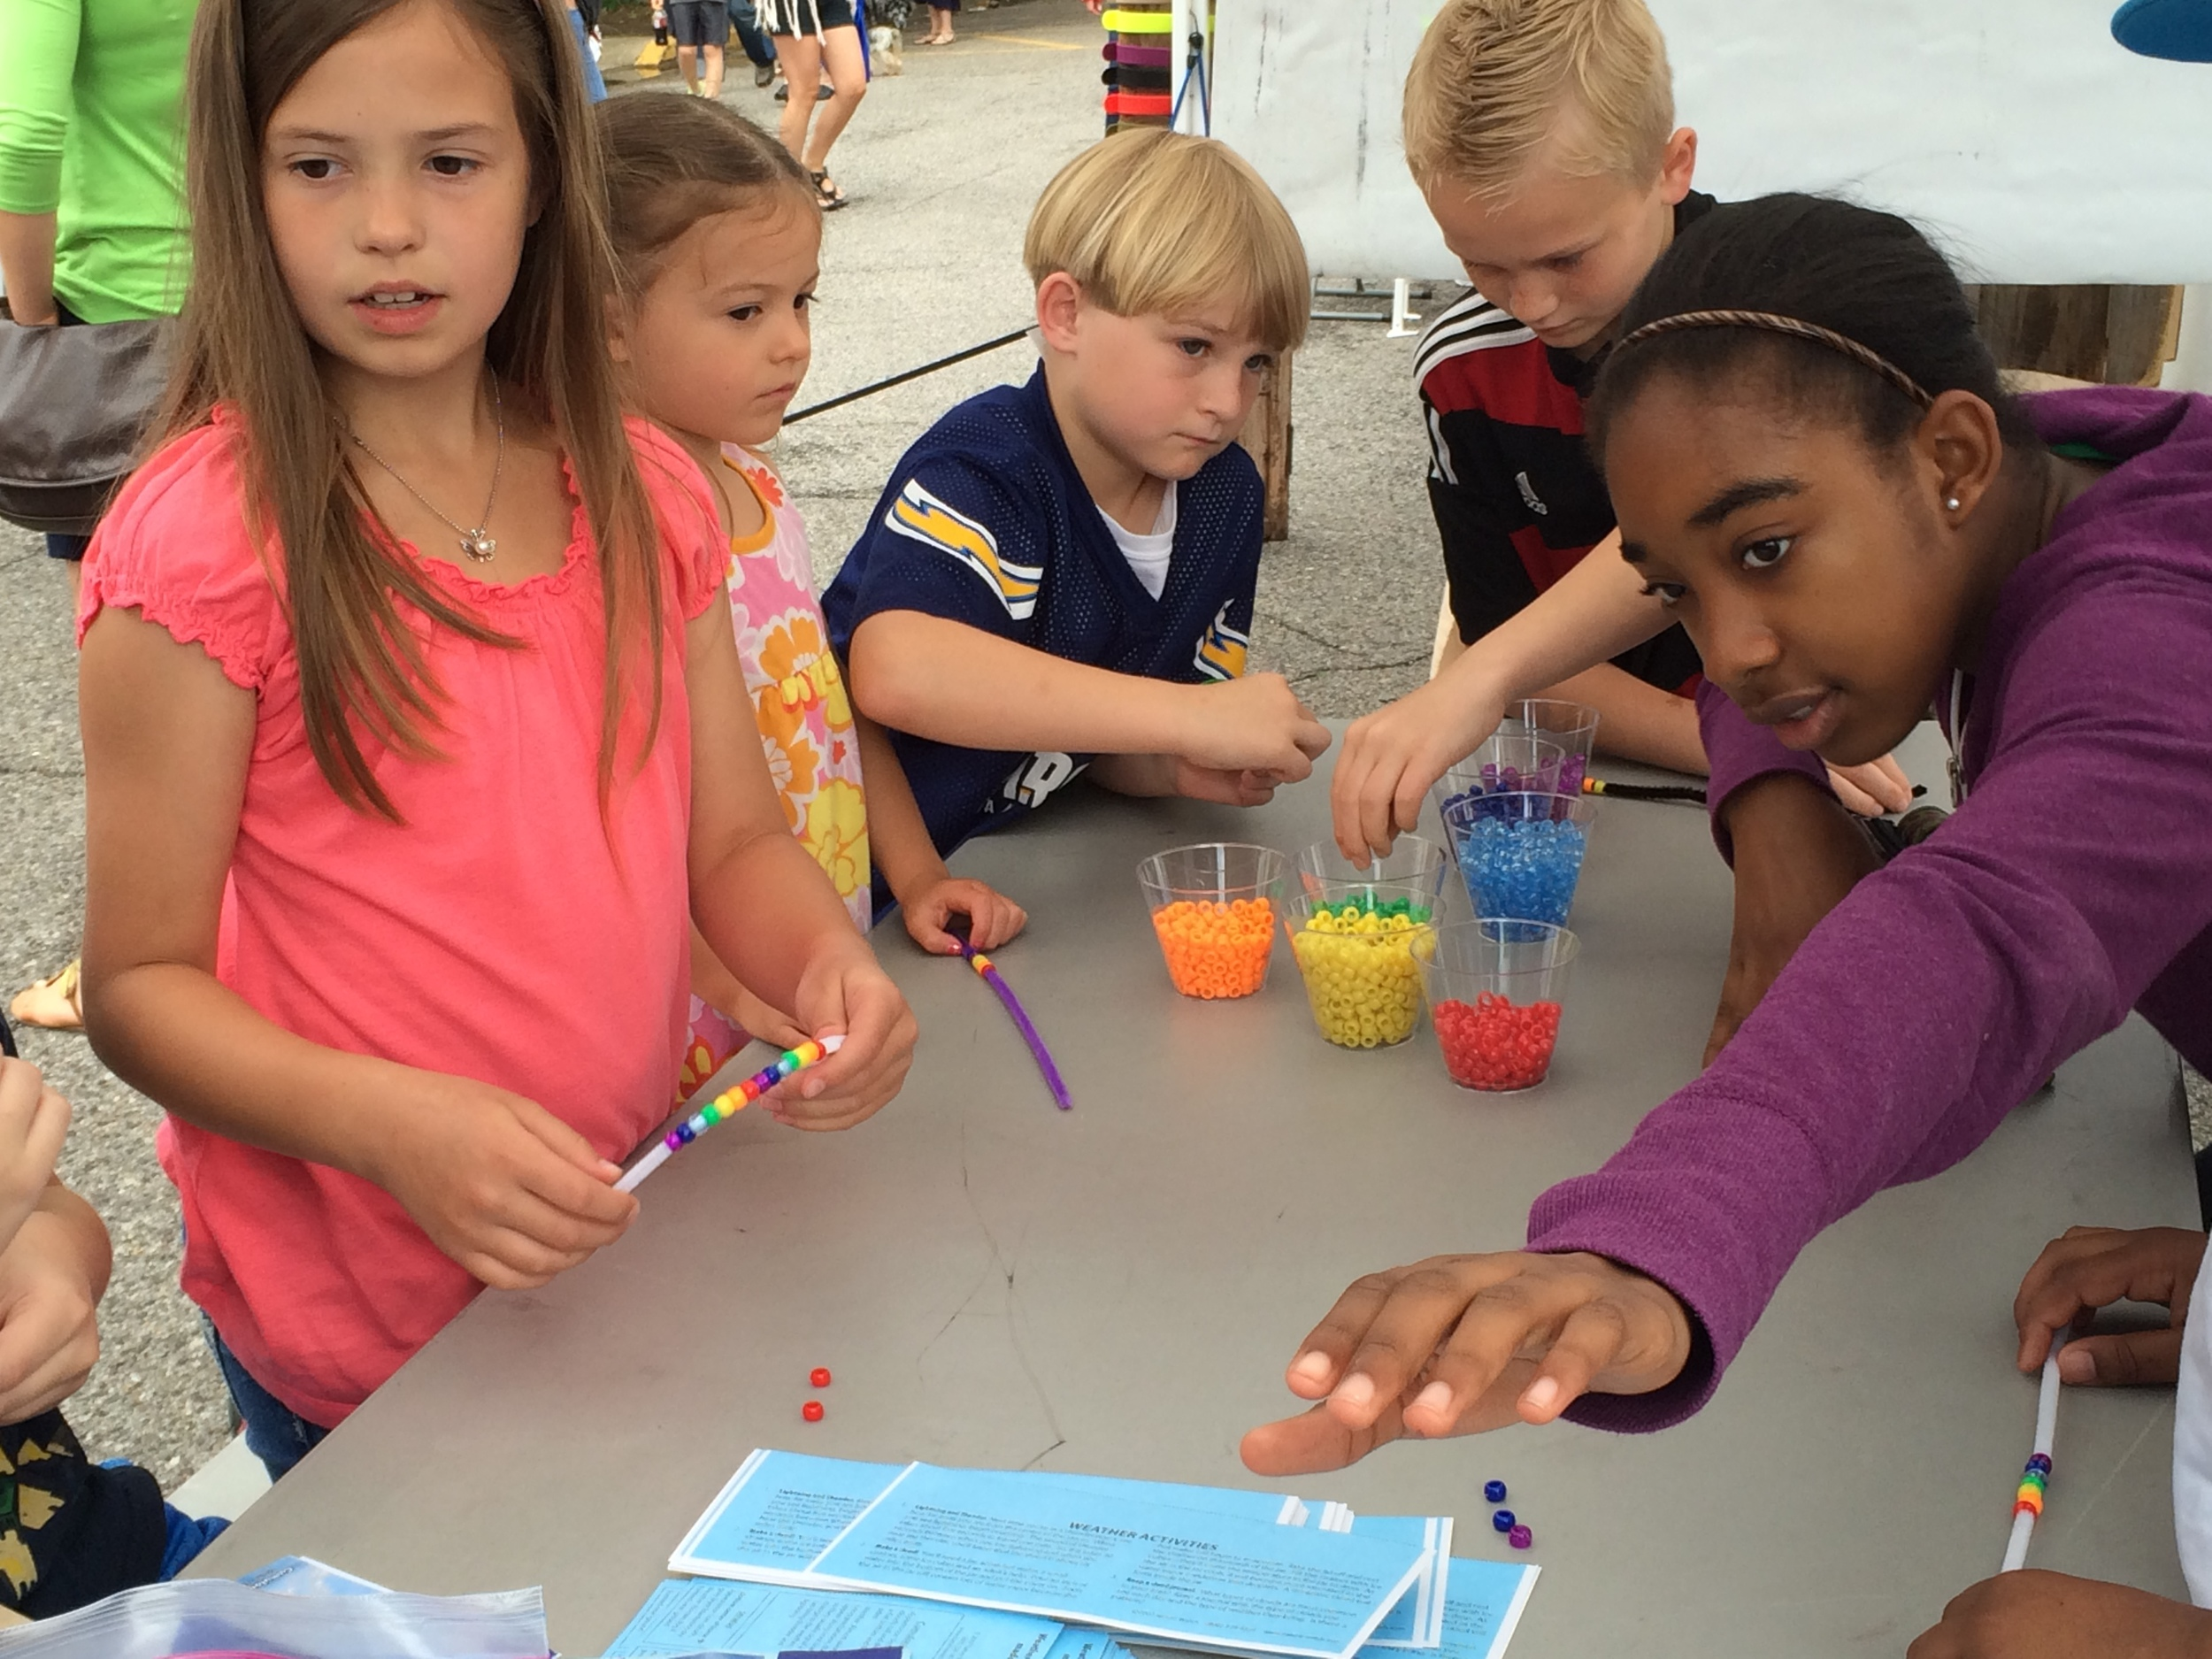 McWane Science Center kids tent in May 2.JPG